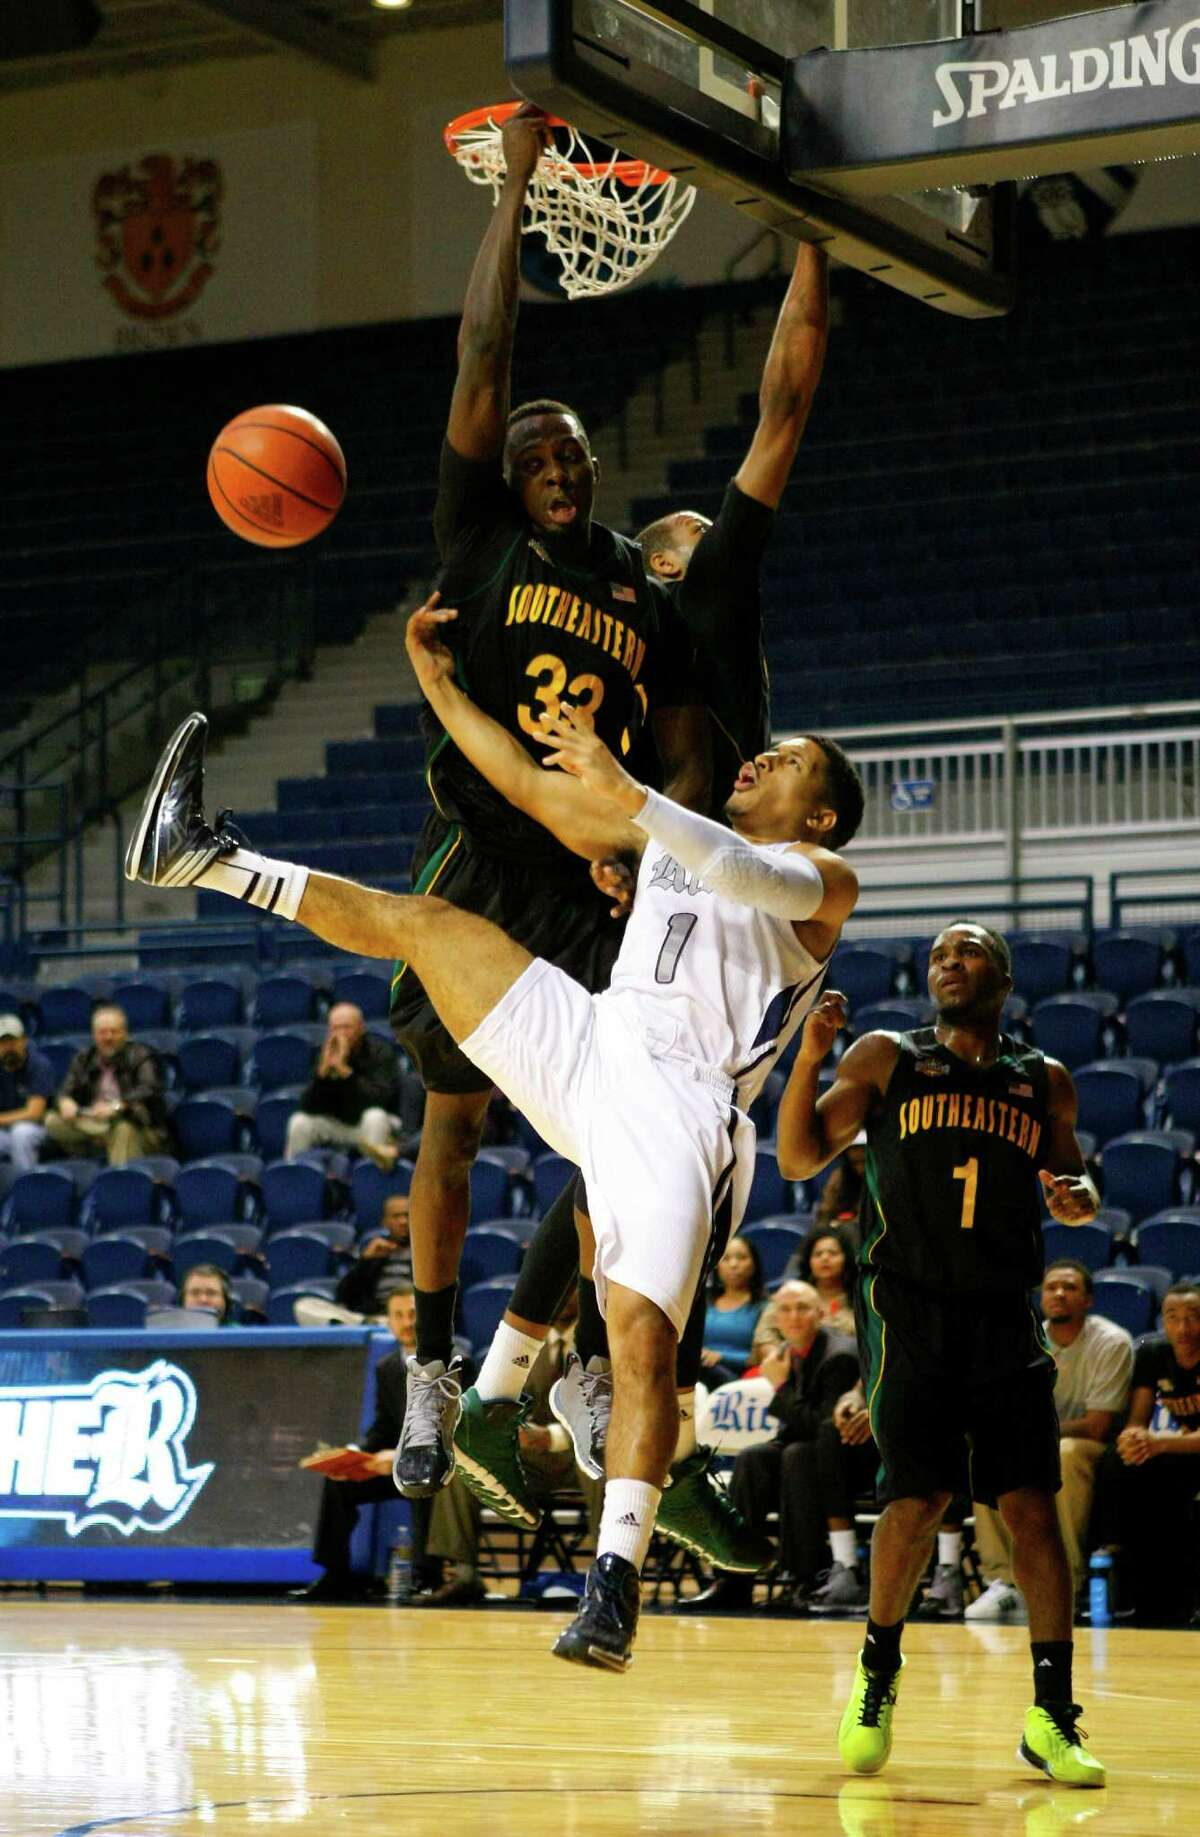 Rice guard Max Guercy takes a hit from Southeastern Louisiana's Onochie Ochie during the Owls' loss.